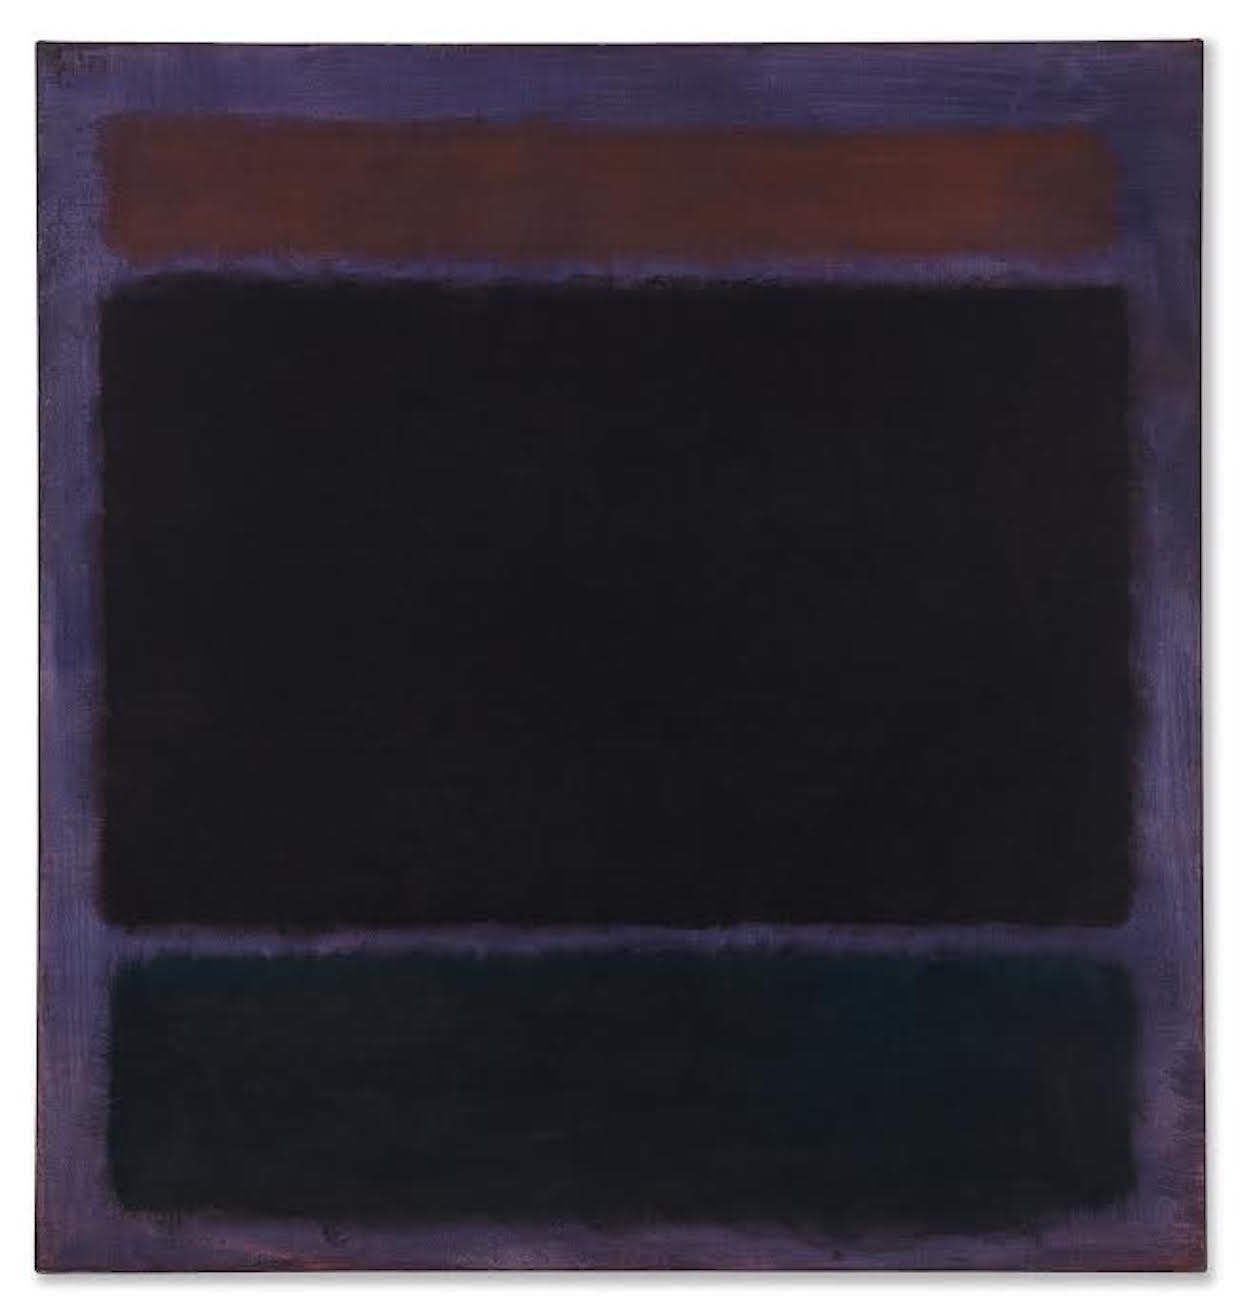 Mark Rothko Painting From François and Susan de Menil Collection Will Hit the Block at Christie's, Estimated at $35 M. to $45 M.